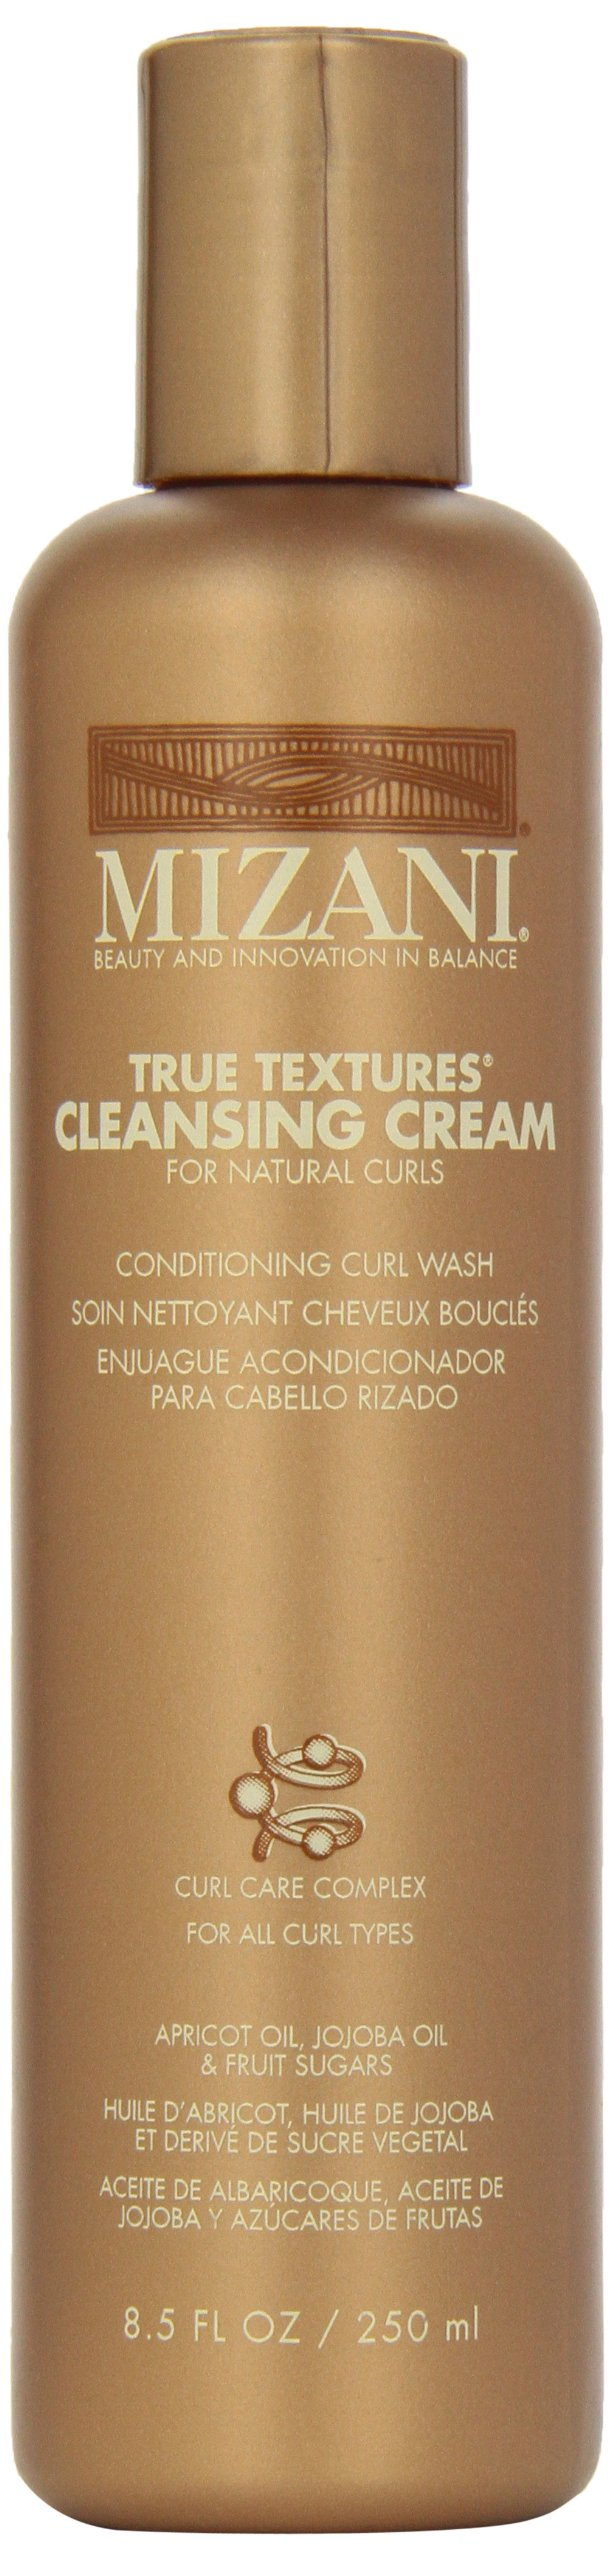 True Textures Cleansing Cream Conditioning Curl Wash by Mizani, 8.5 Ounce